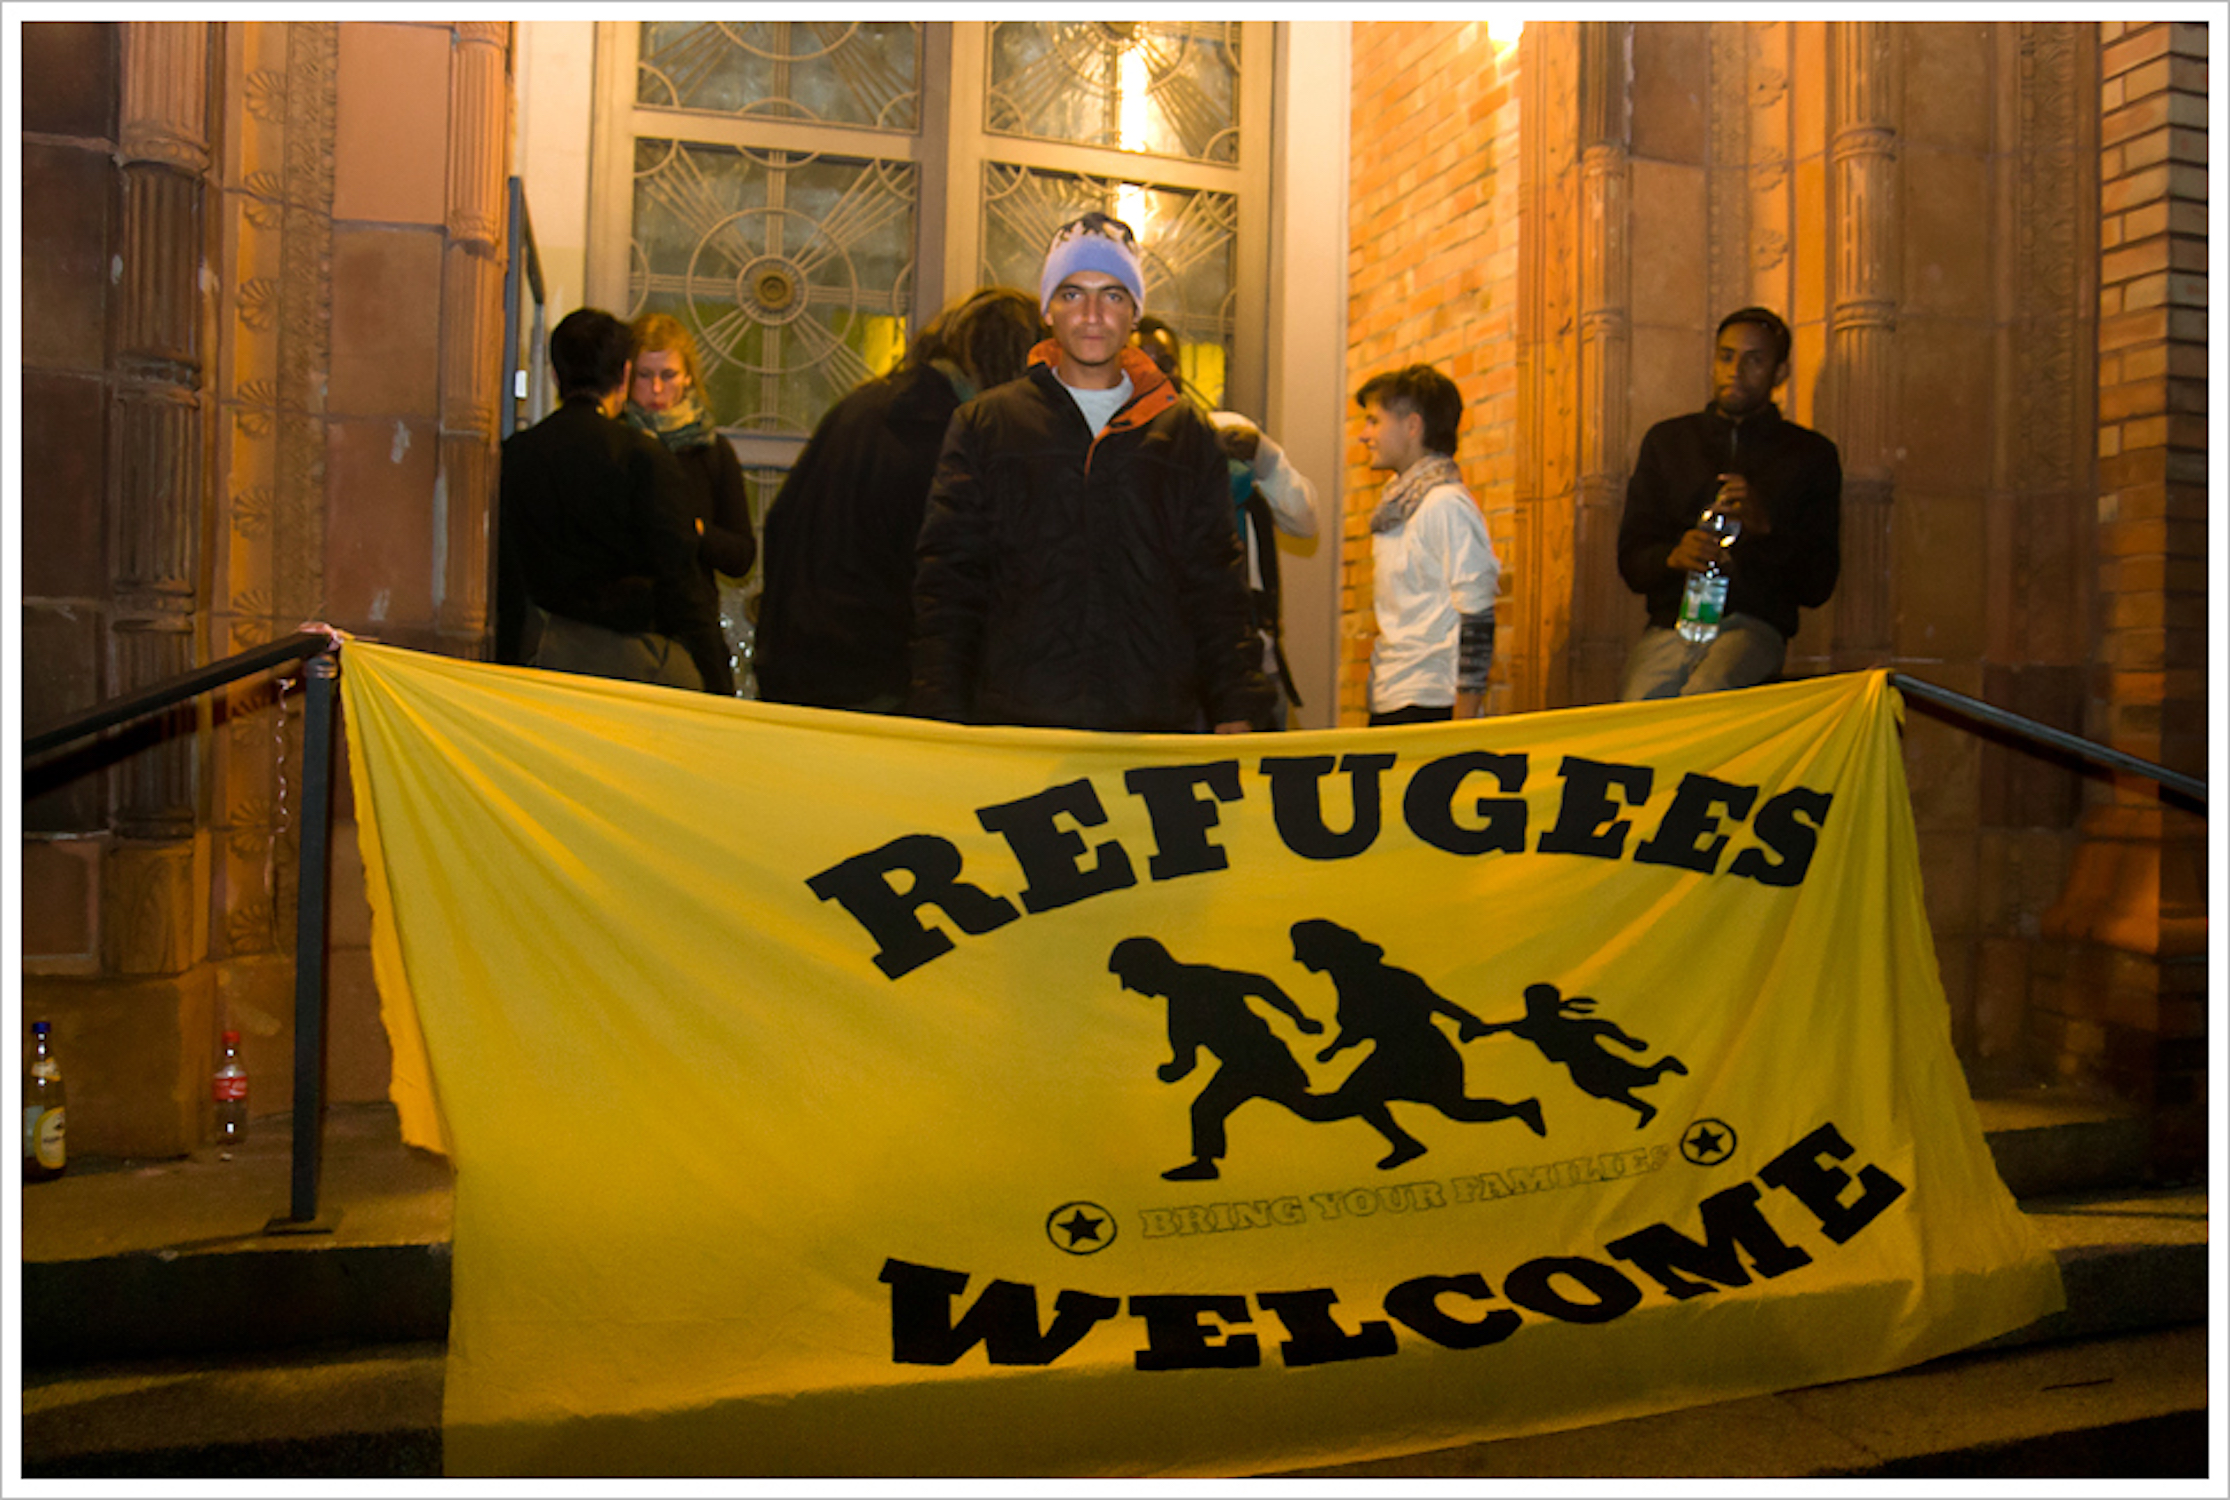 'Refugees Welcome' banner in Berlin, Germany